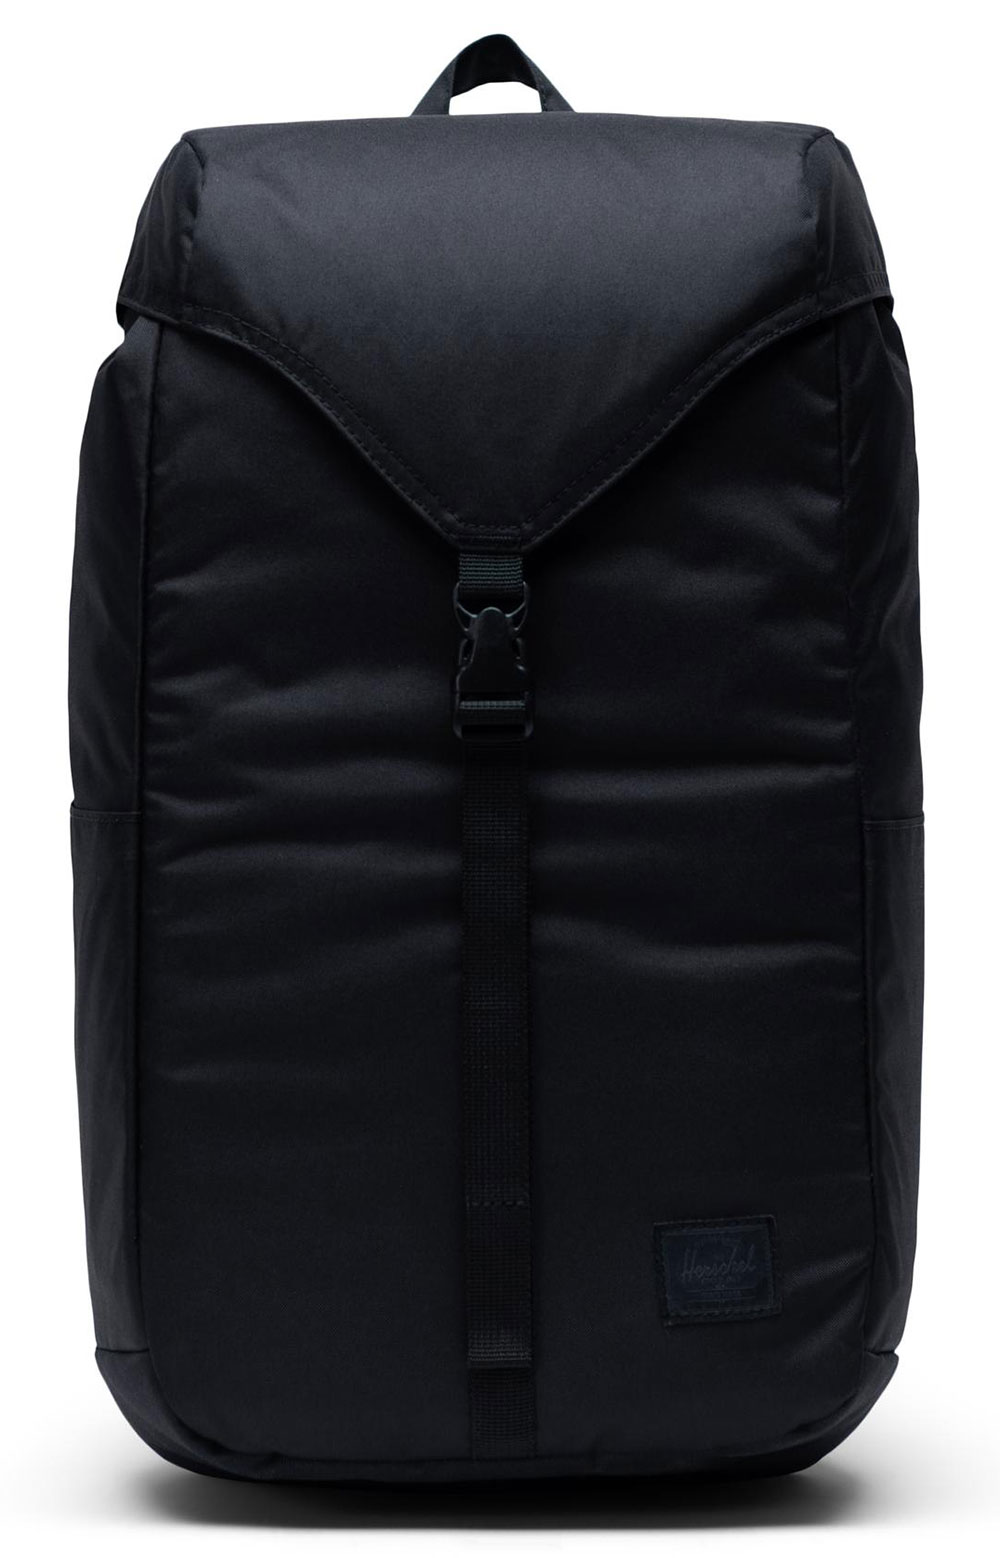 Thompson Light Backpack - Black